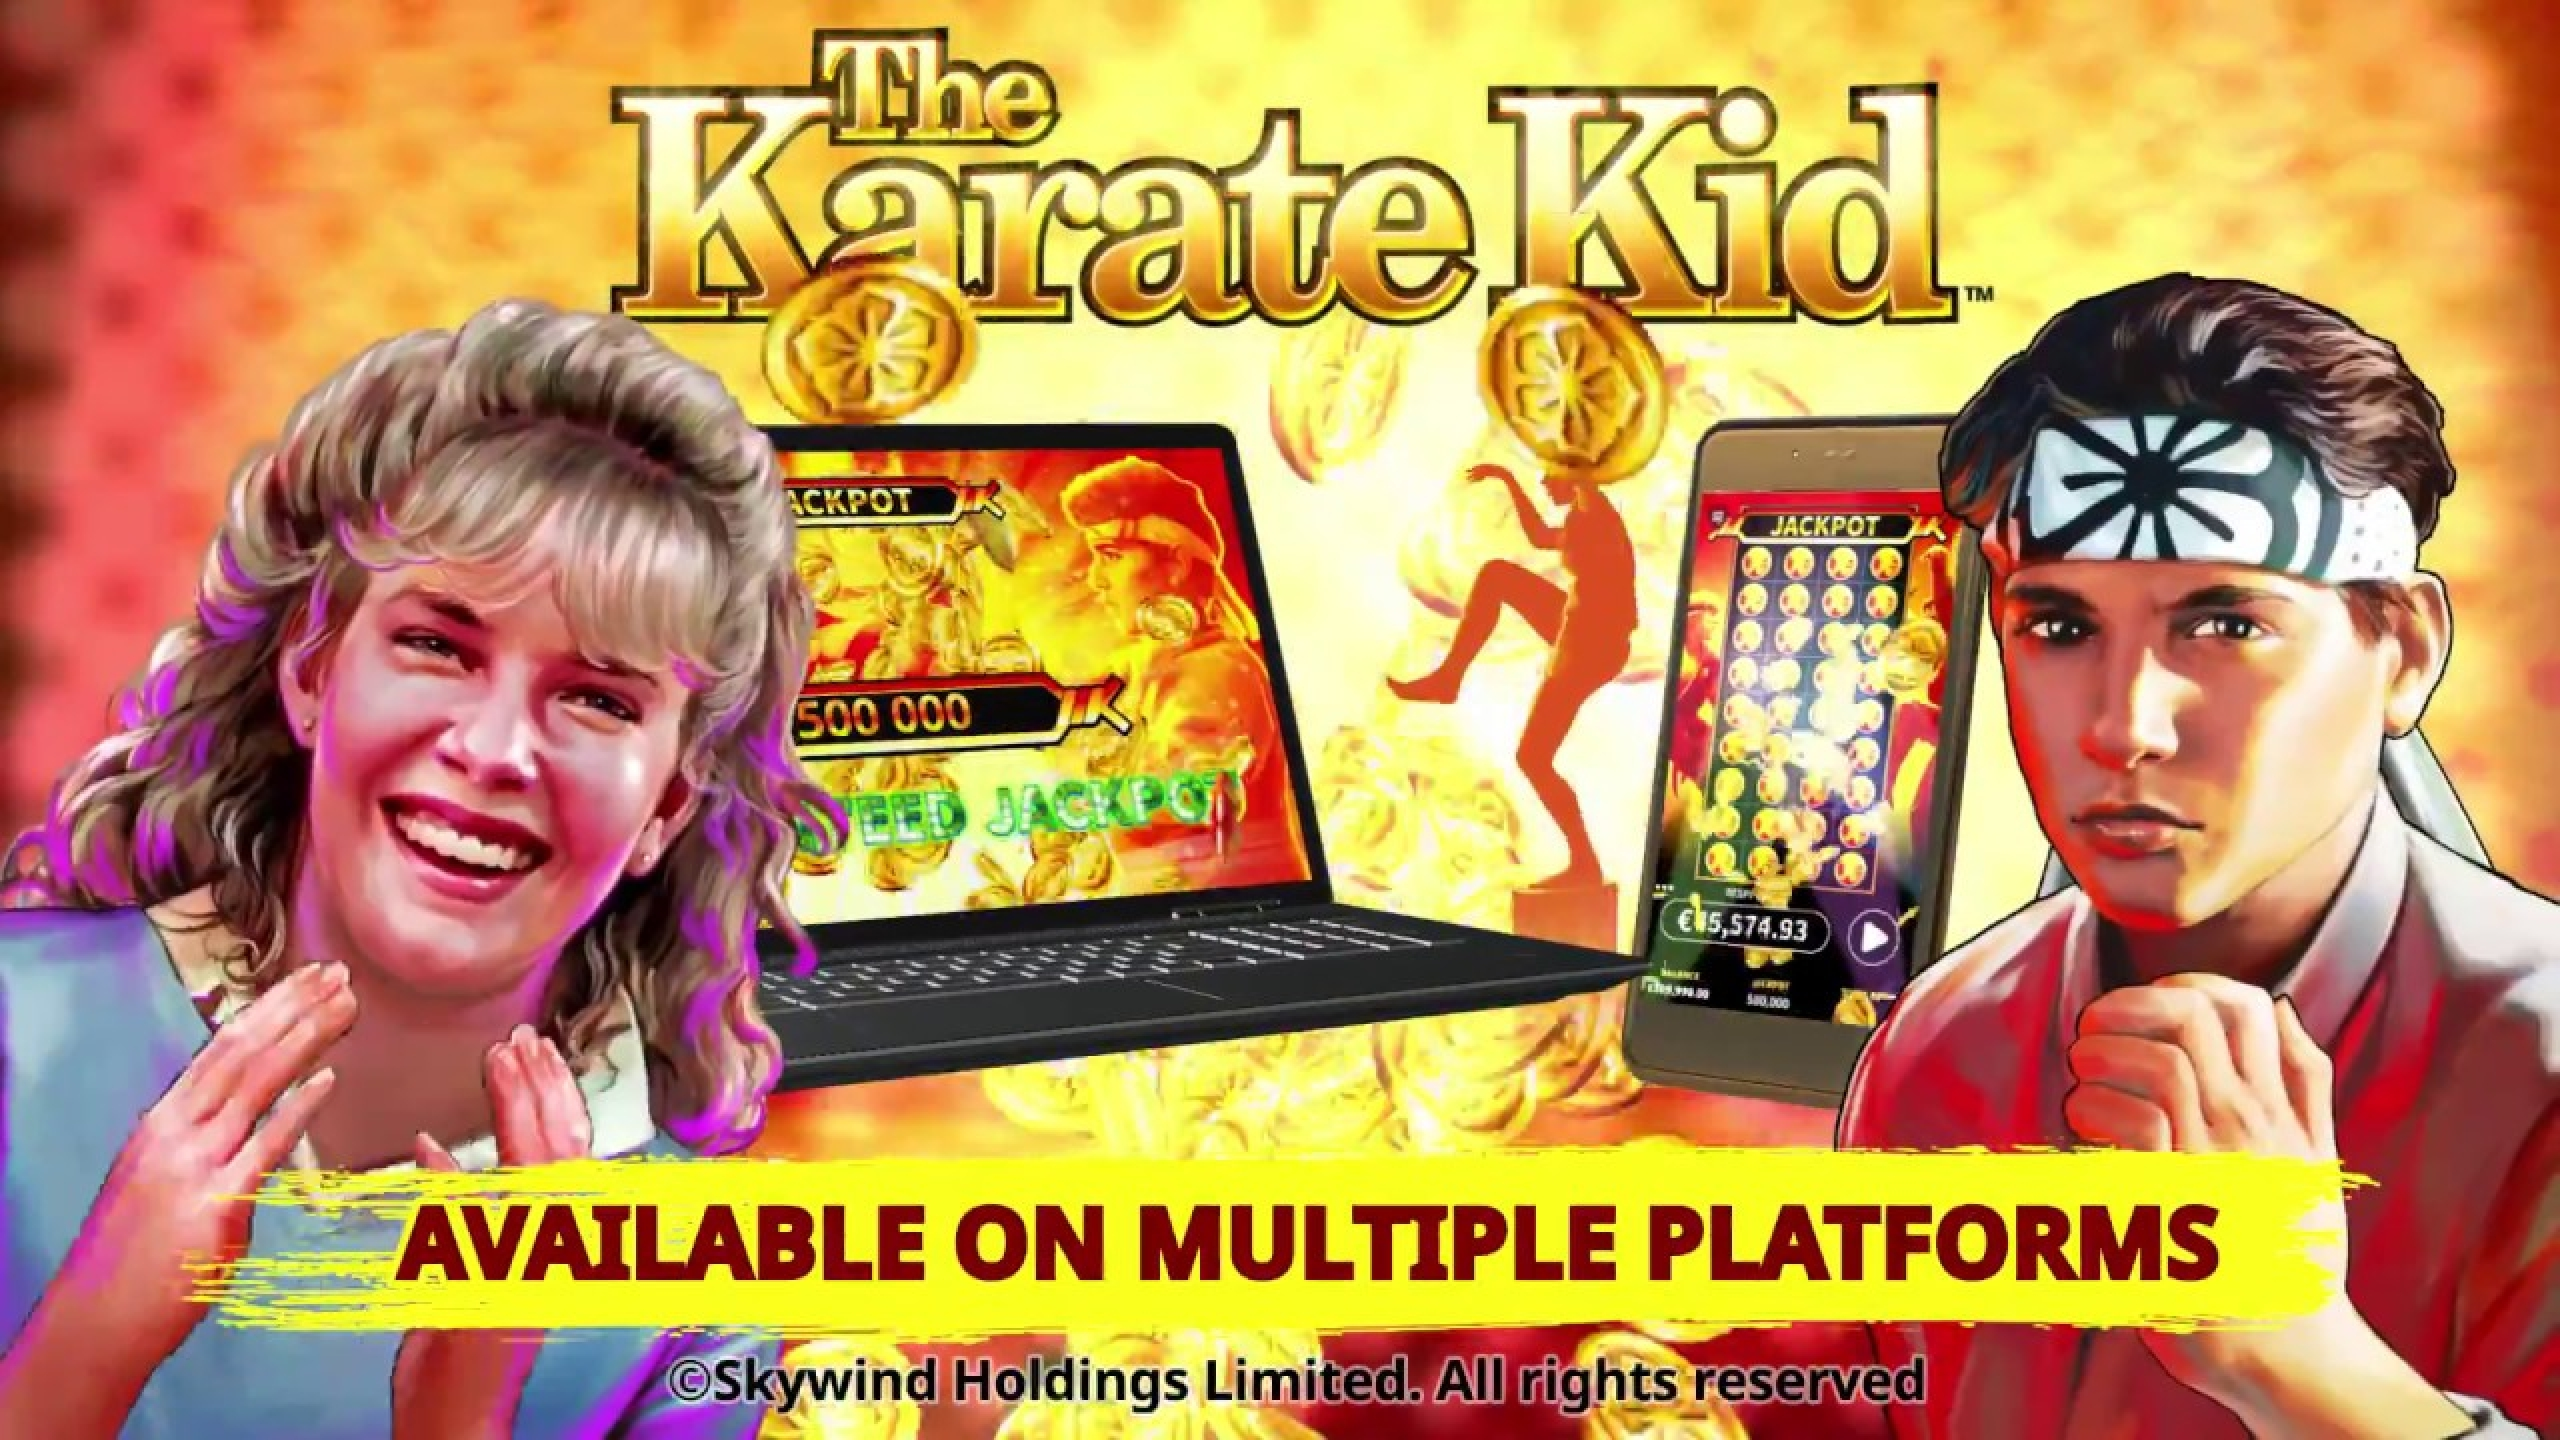 Win Money in The Karate Kid Free Slot Game by Skywind